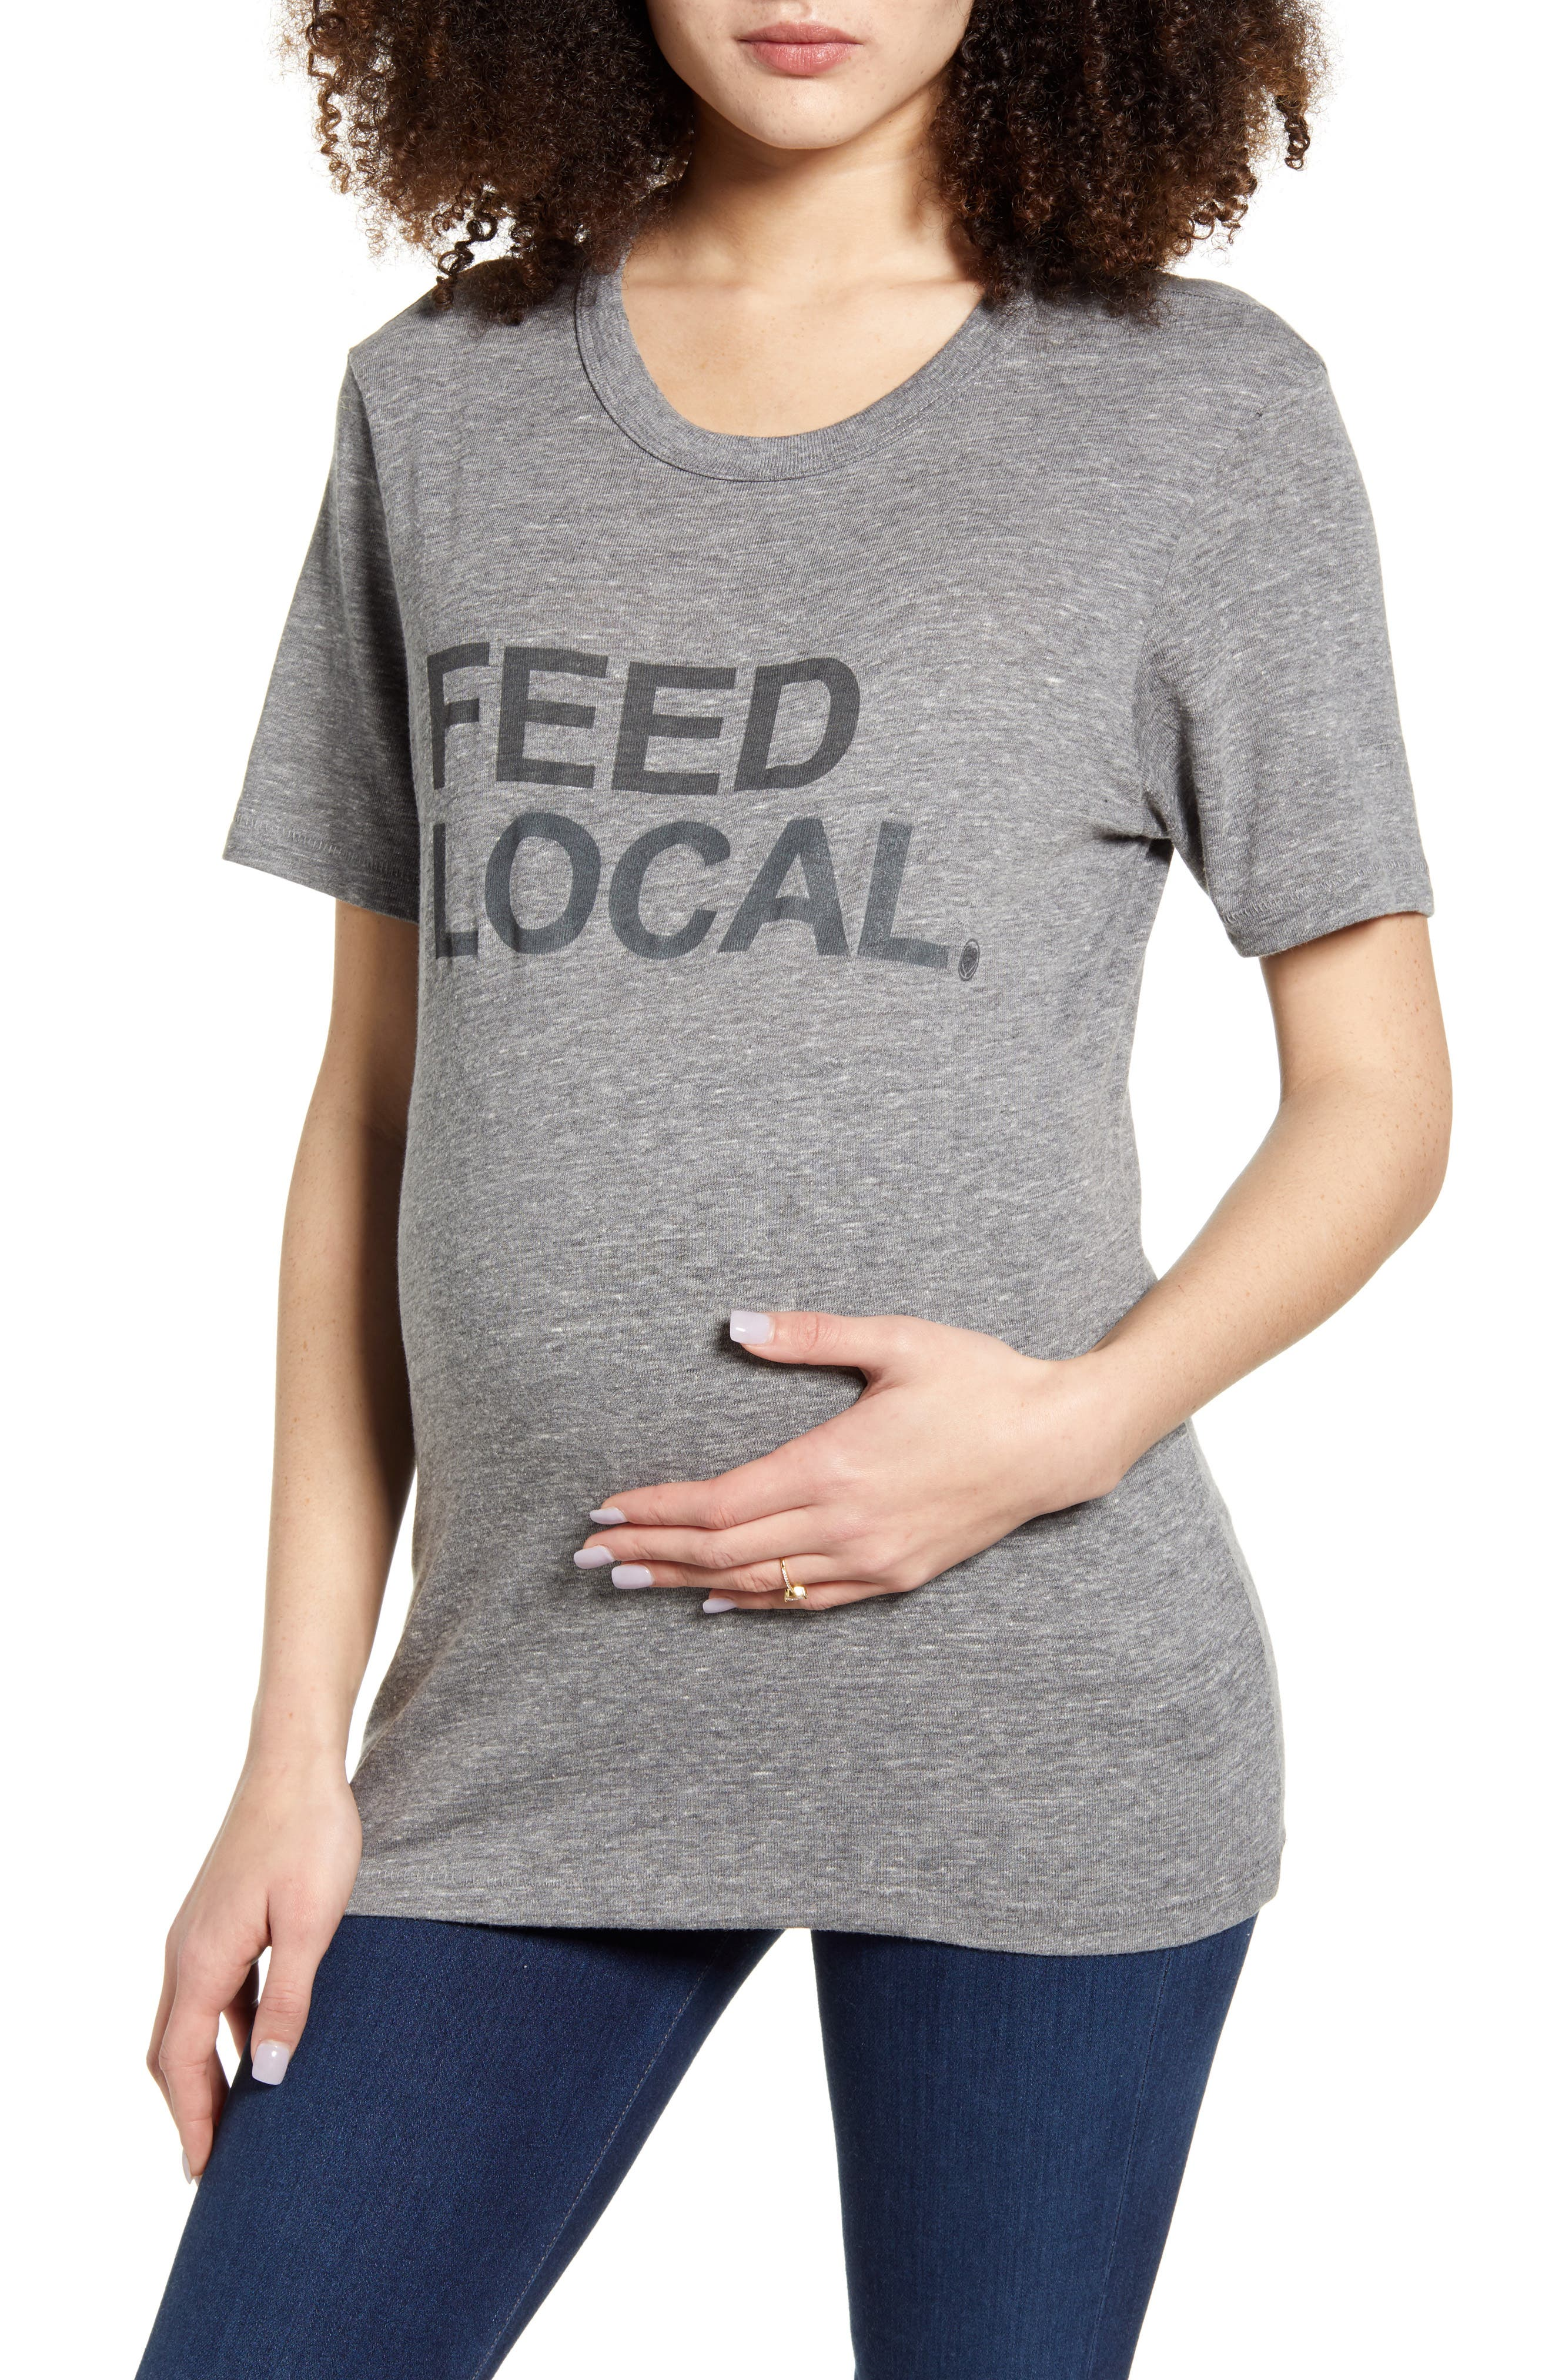 Feed Local Maternity Graphic Tee